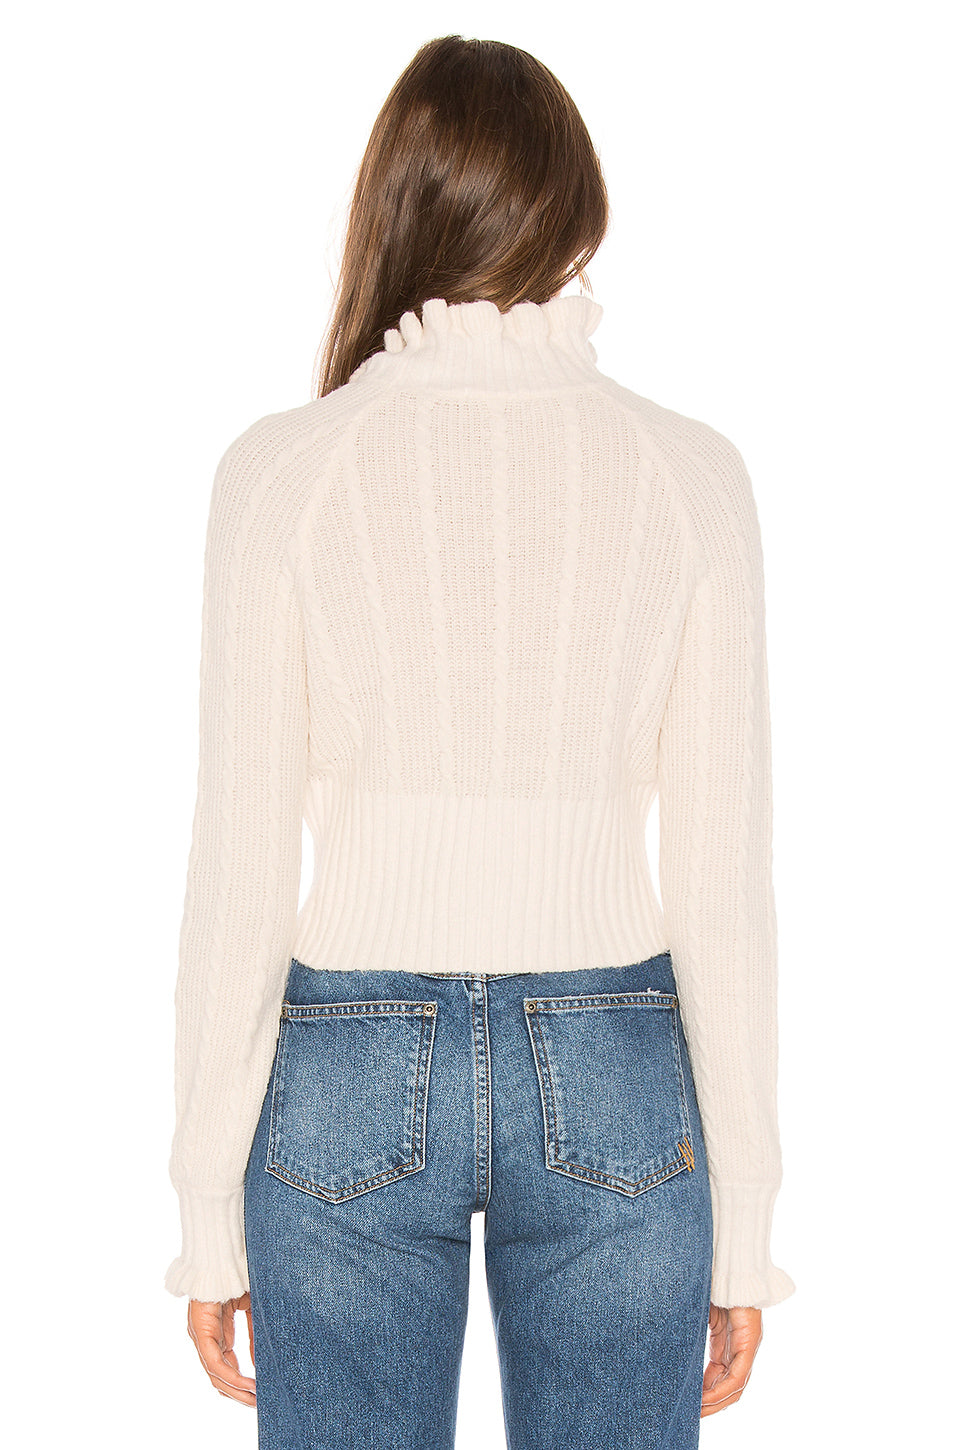 Lottie Sweater